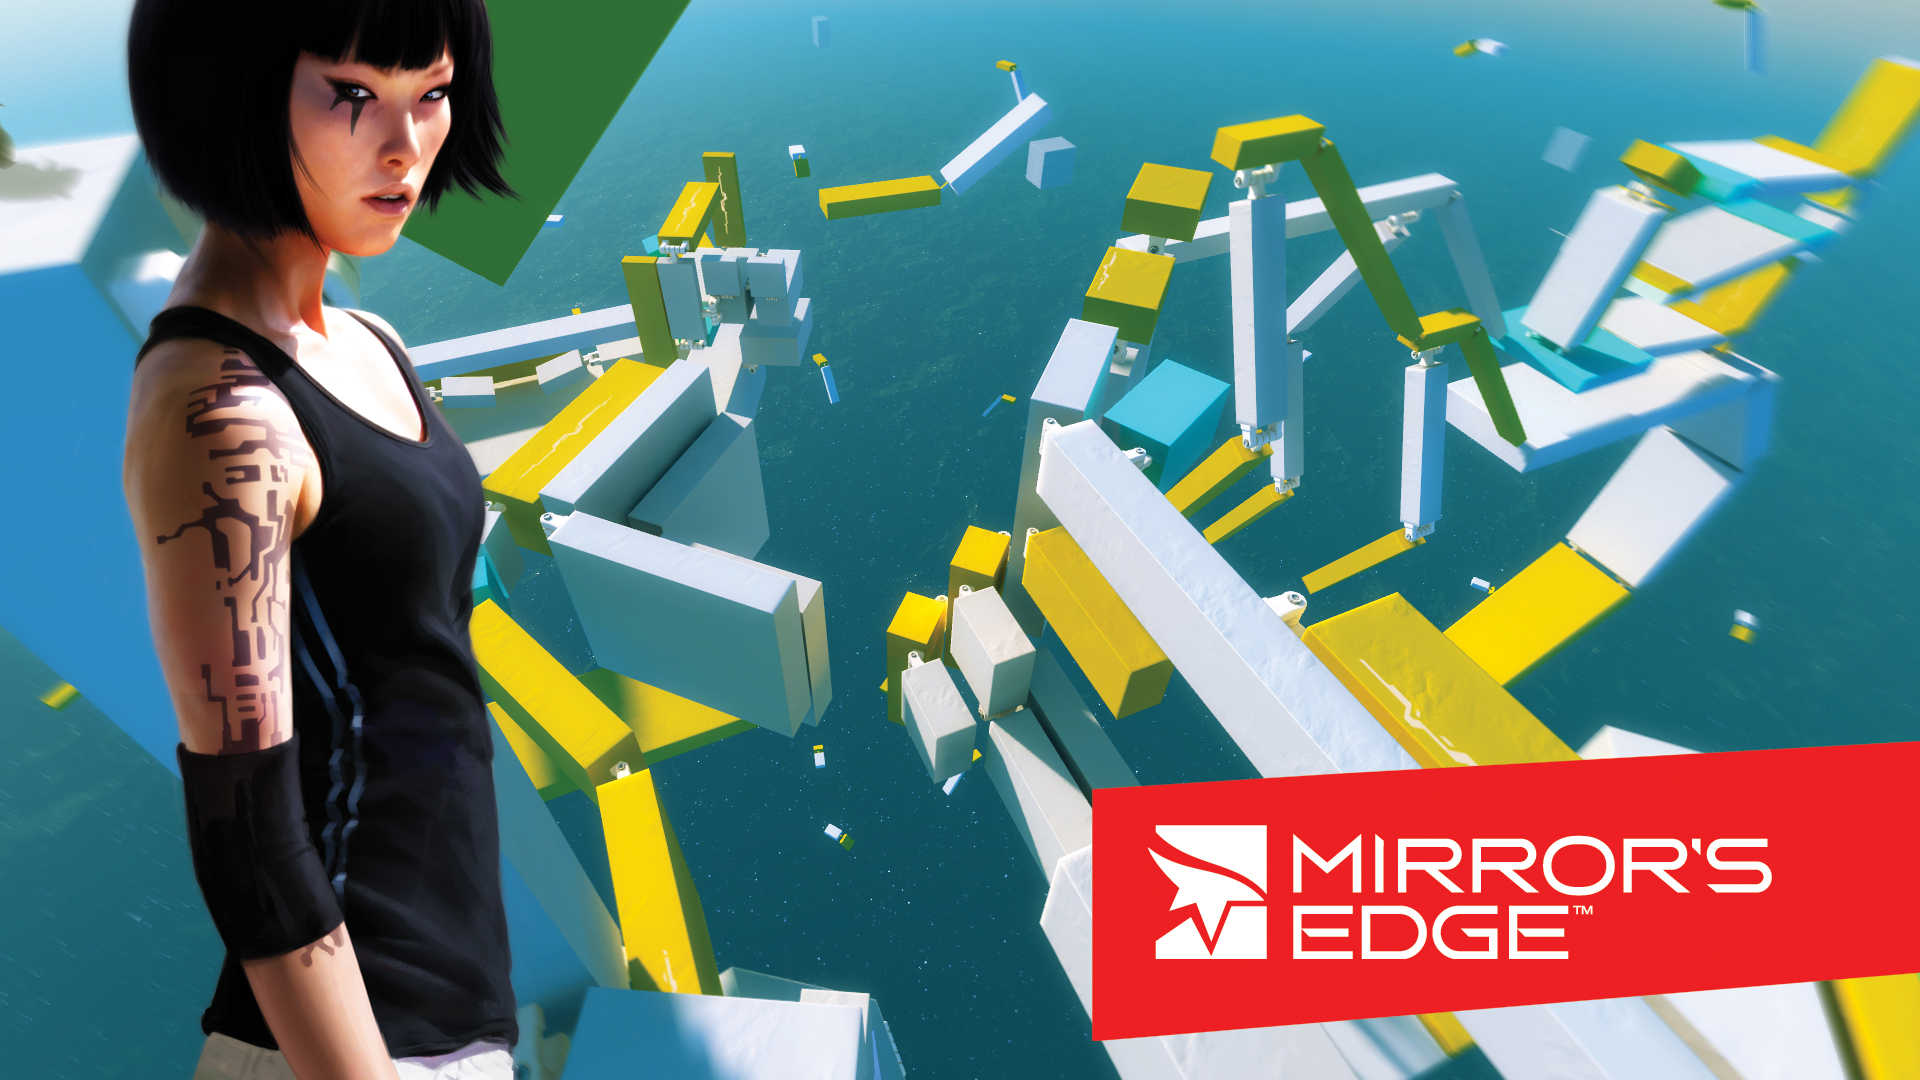 Mirror's Edge - Challenge Wallpapers